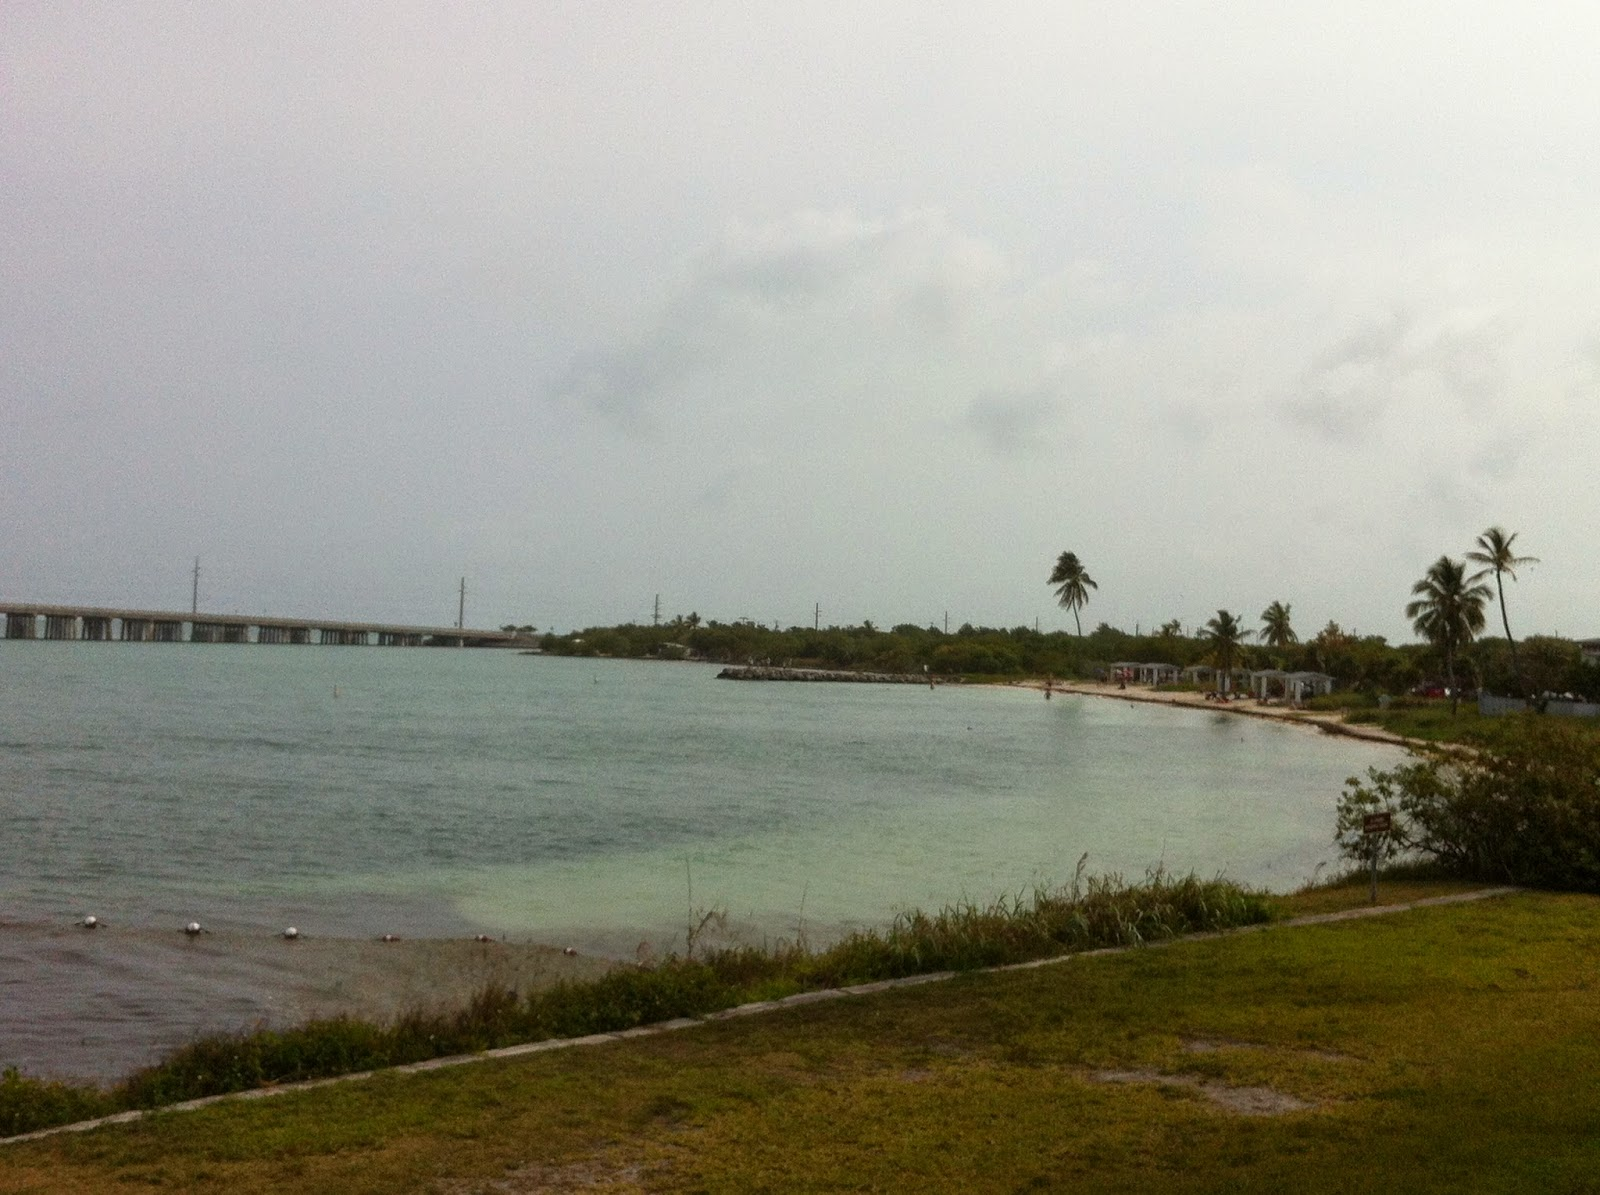 Our fantastic falcon voyage bahia honda state park for Bahia honda fishing